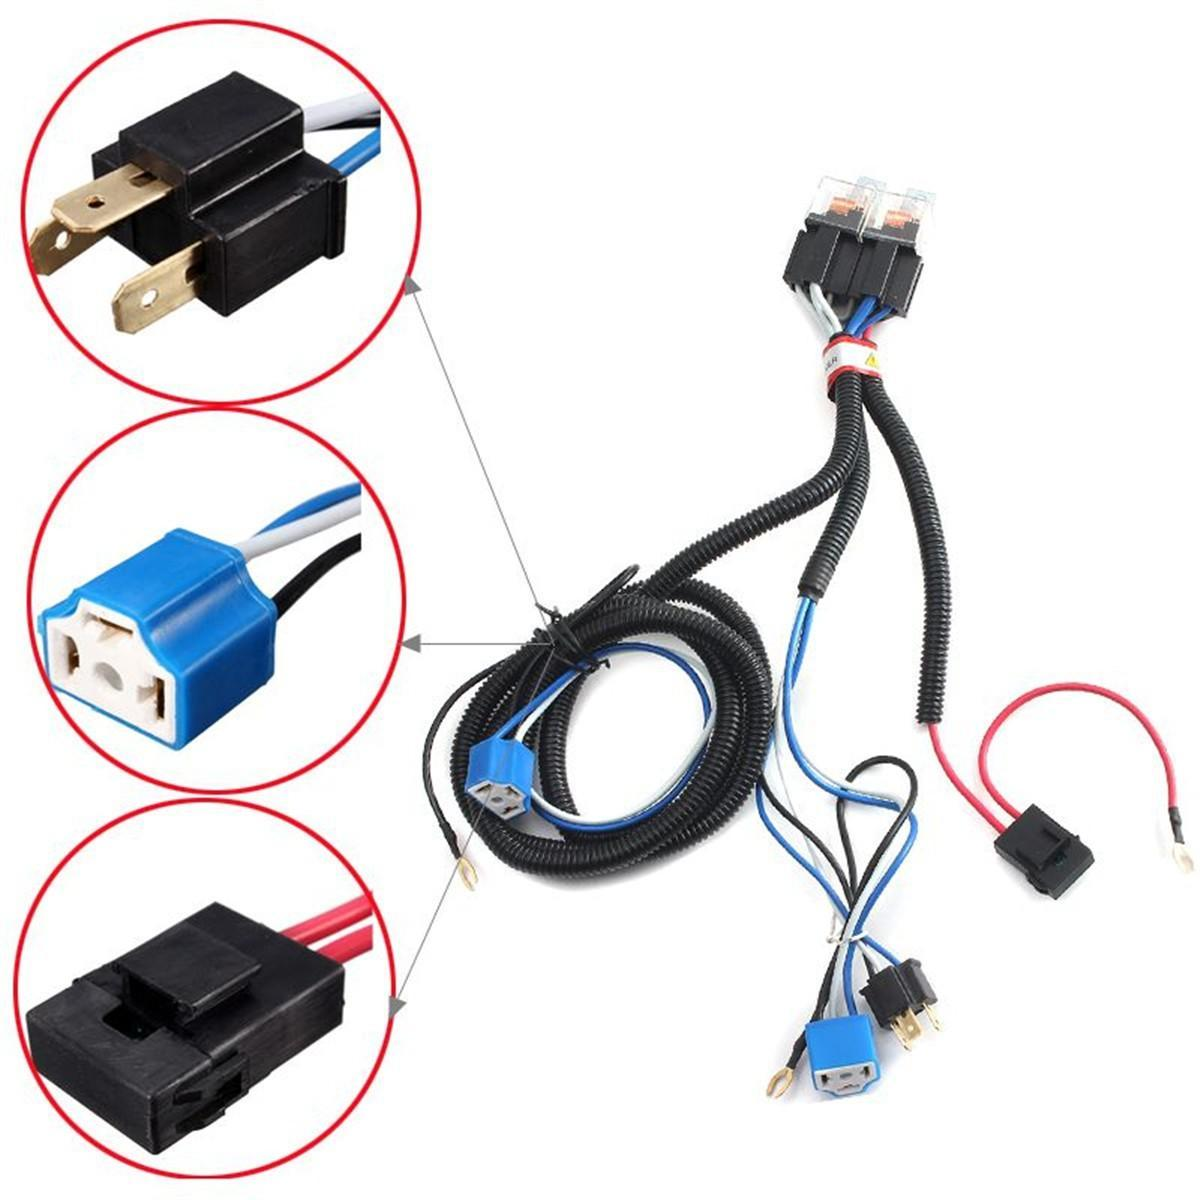 Wiring Harnesses - Buy Wiring Harnesses at Best Price in stan ... on chevy 2 headlight relay harness, h4 vs 9003 wiring, h4 headlight socket wiring diagram, automotive wiring harness, h4 headlight wiring details, h4 wiring with diode, h4 plug wiring ground, electrical harness, h4 headlight connector 12 gauge, heavy duty headlight harness,